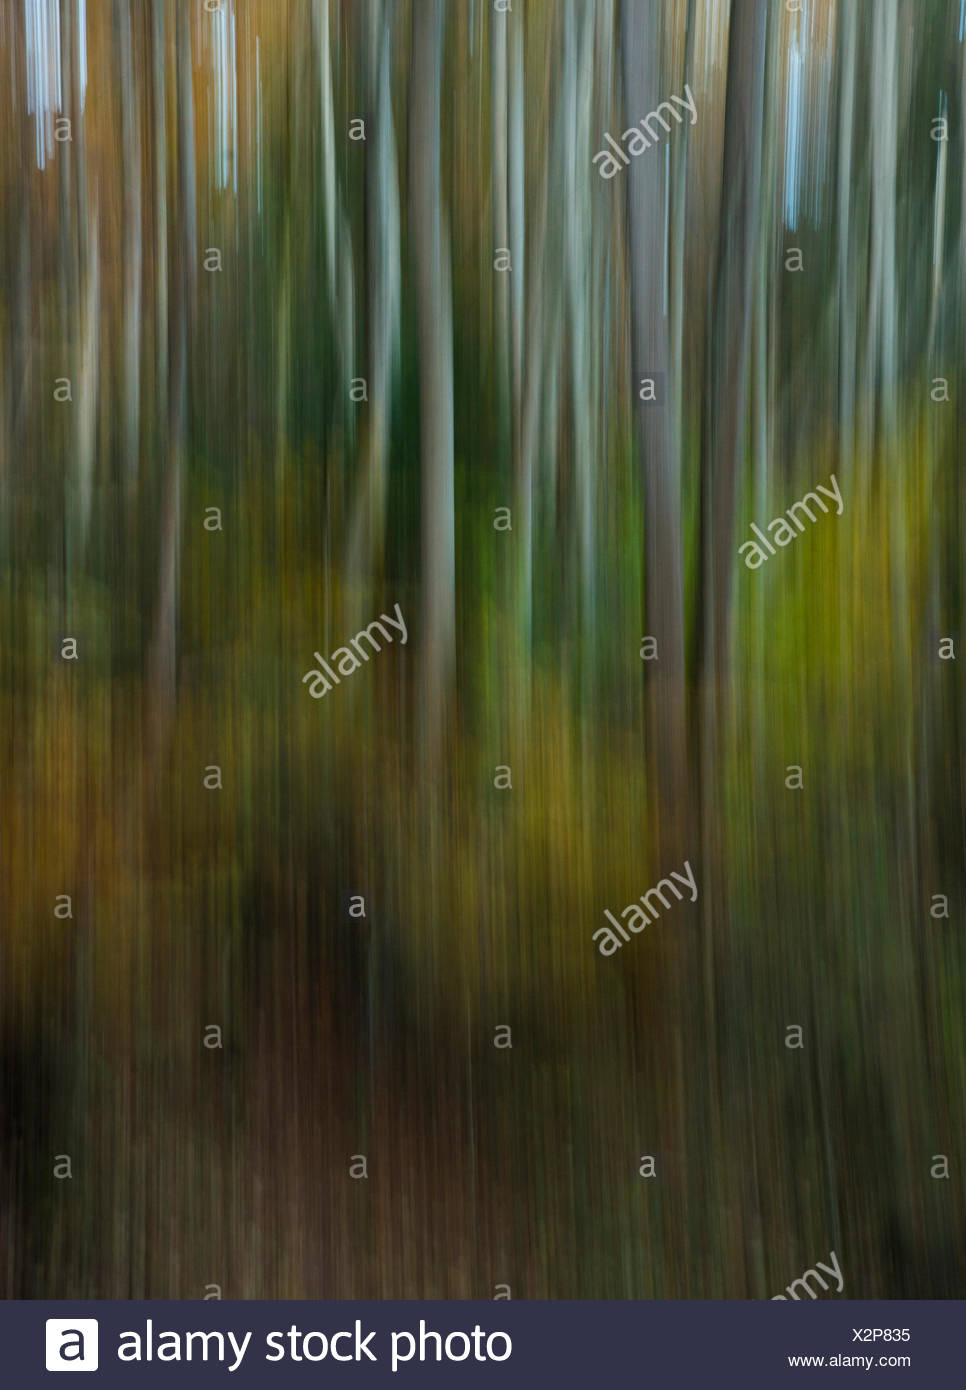 Autumnal forest, mixed forest, blurred, abstract, Bavaria - Stock Image